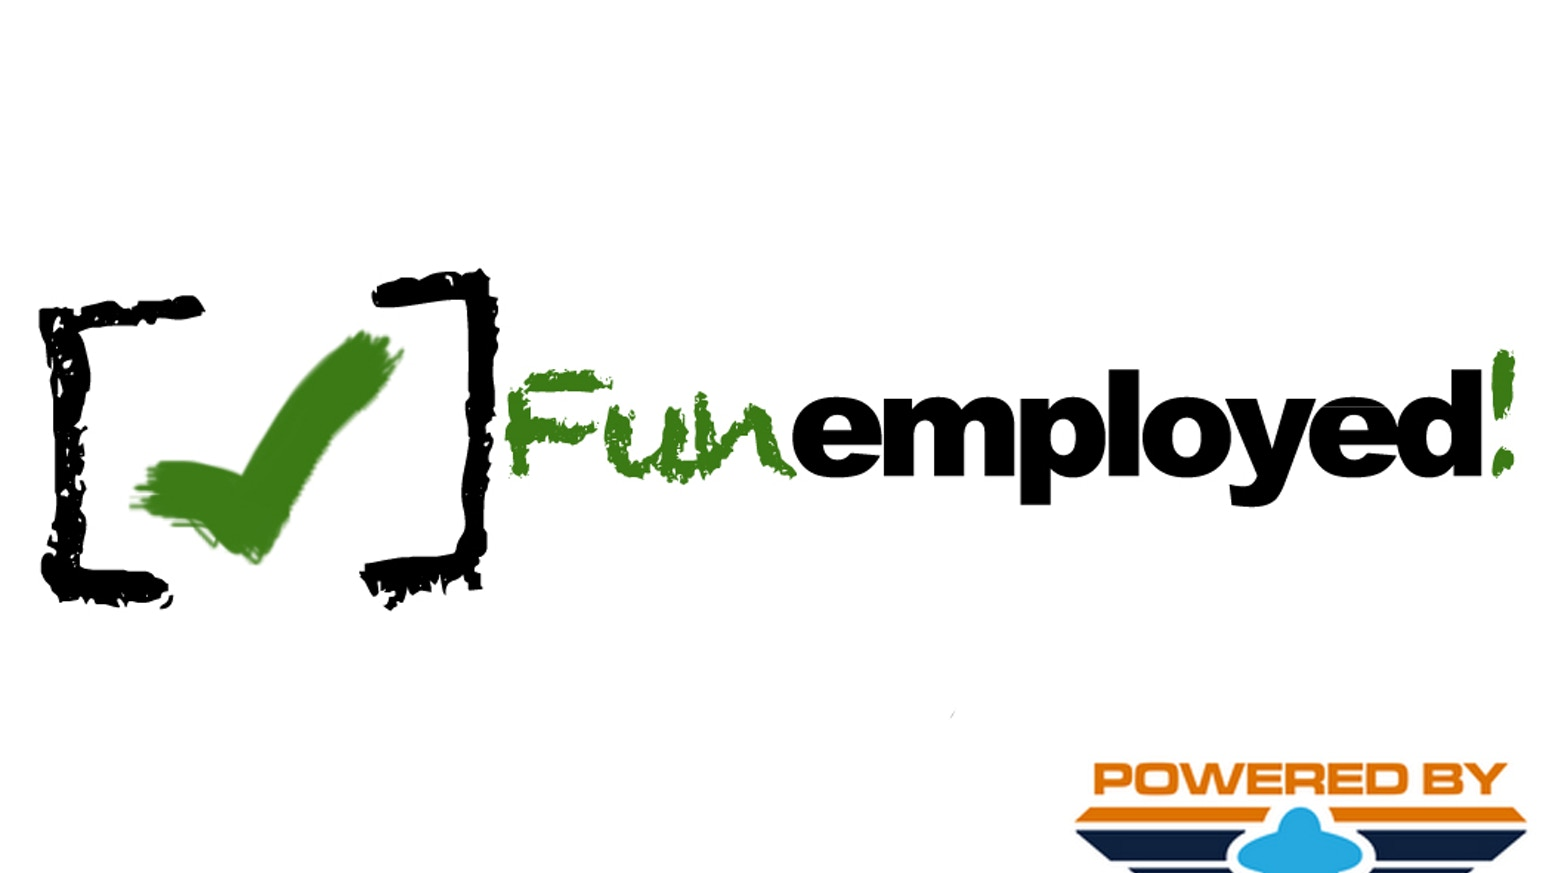 Funemployed! is a party game where players apply to real jobs using unreal qualifications. Do you have what it takes to be Funemployed?